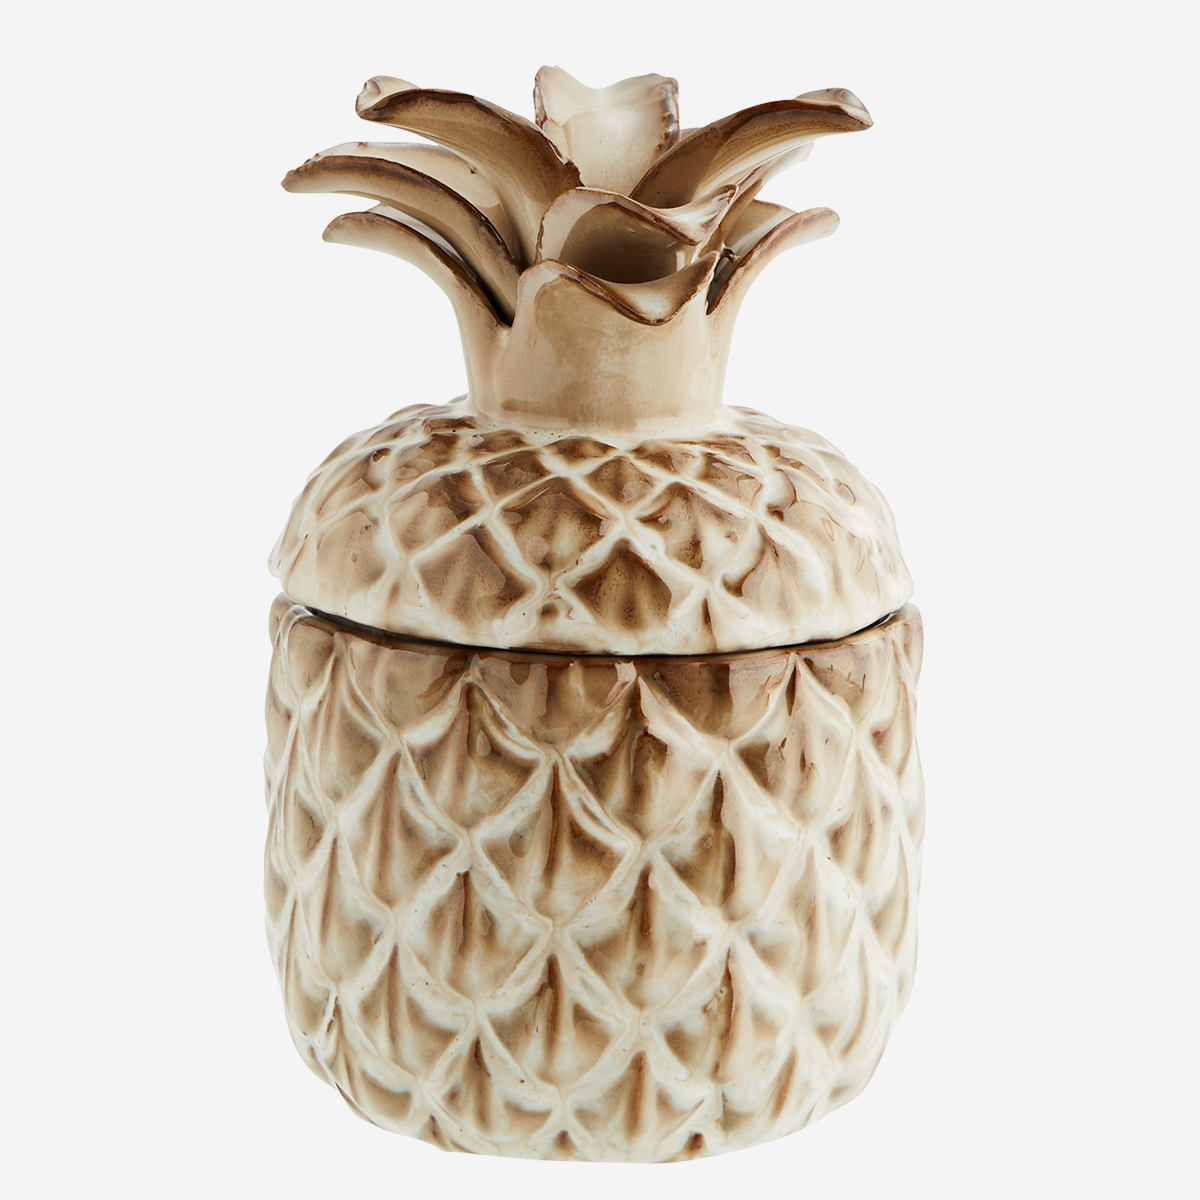 Pineapple jar w/ lid